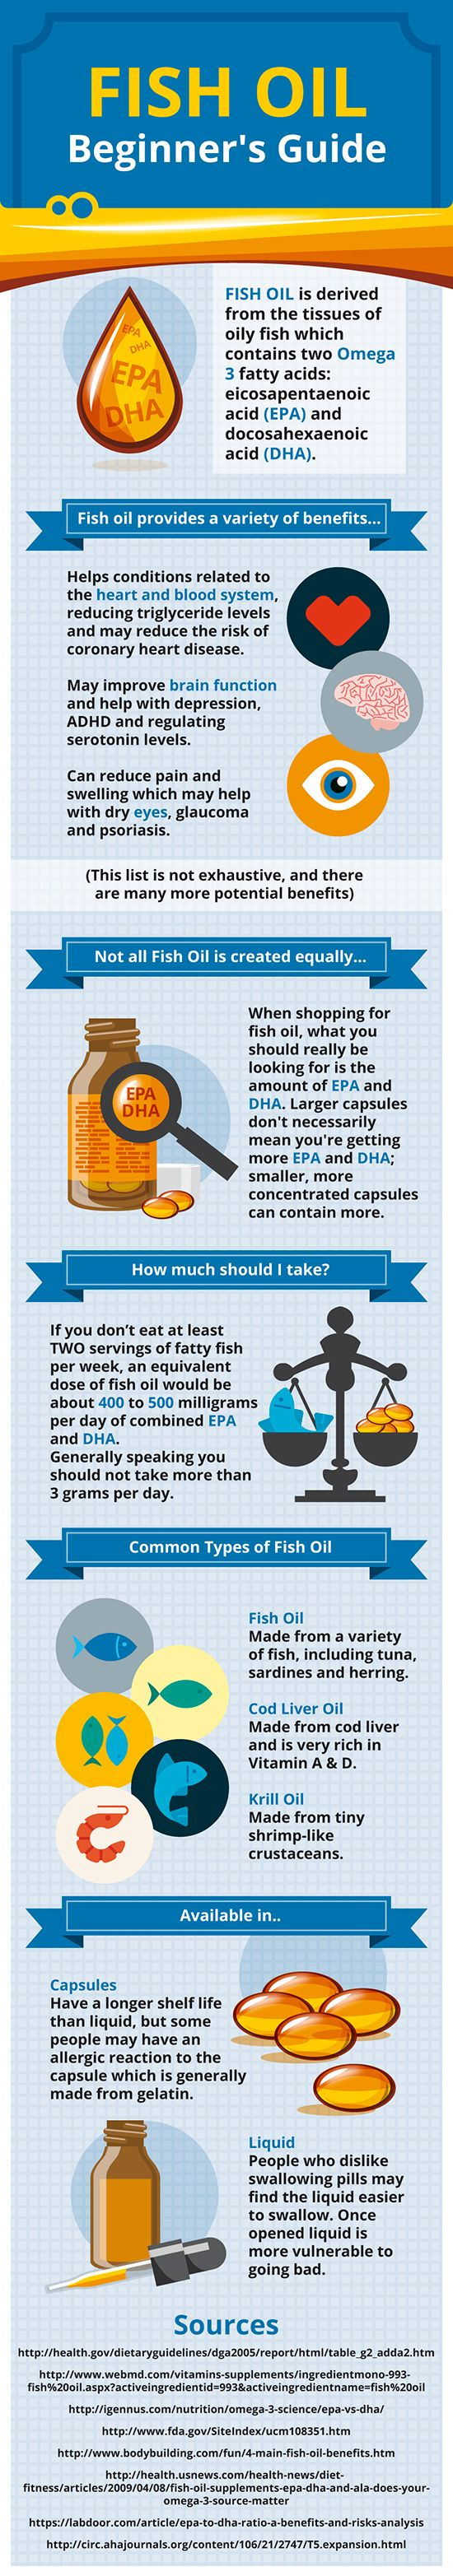 This infographic simplifies the process of using fish oil. Many people are confused when they're first trying to buy fish oil.. They have many questions: What's EPA? DHA? How much should I take? We wanted to answer these questions by making an easy to digest graphic. You'll find out what fish oil is, how much to take (for a regular person), the different types of fish oil, and more. #infographic